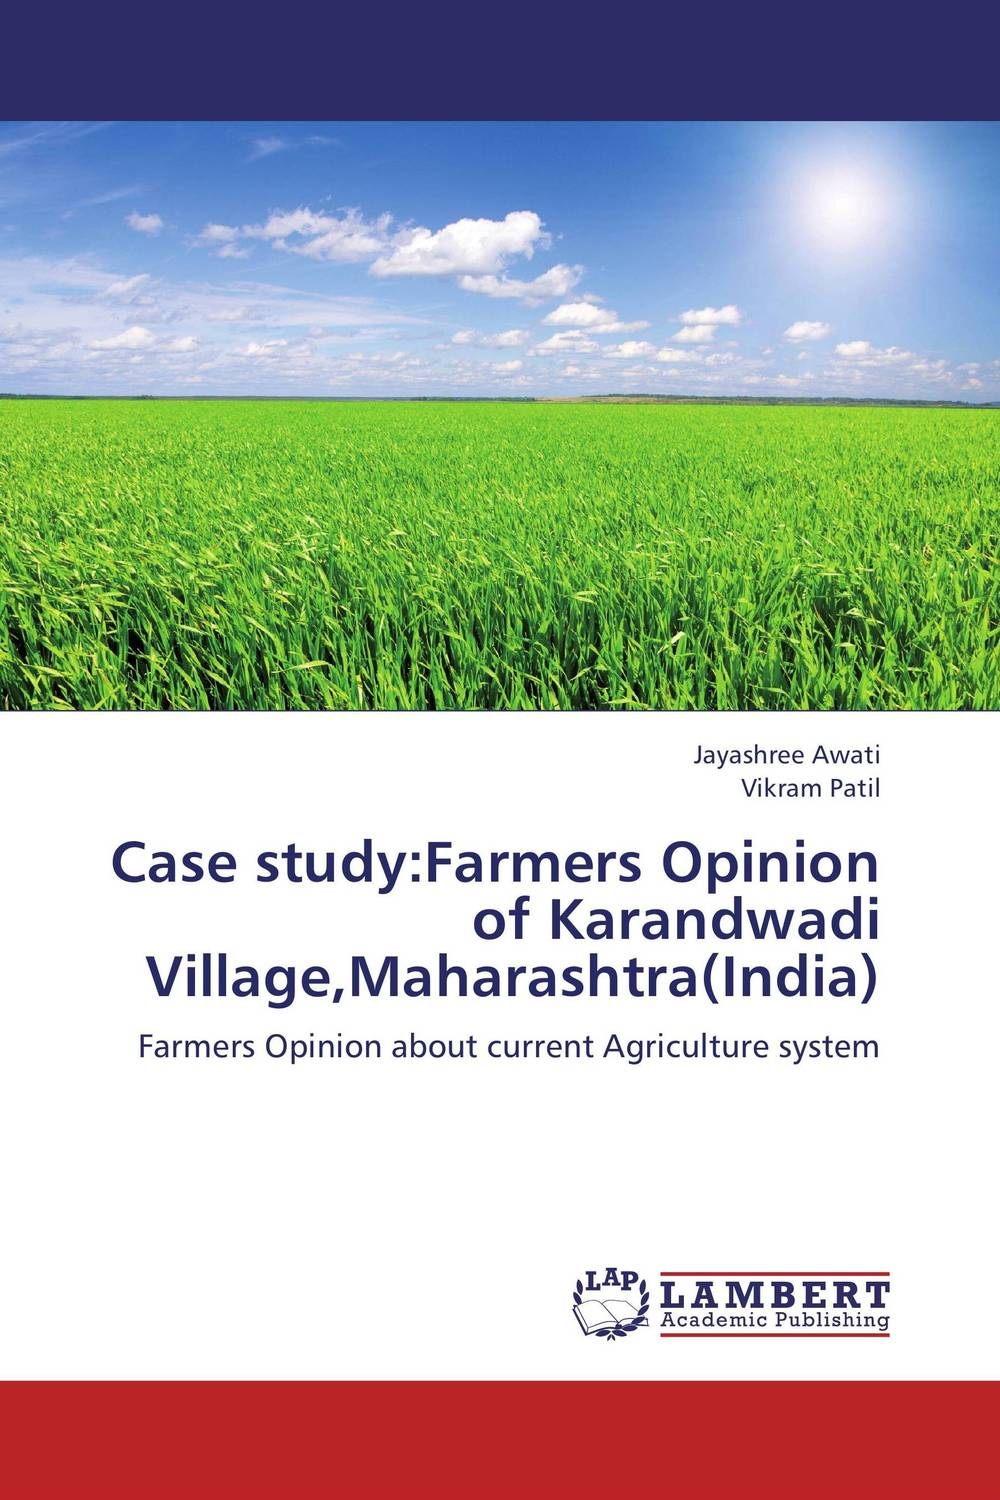 Case study:Farmers Opinion of Karandwadi Village,Maharashtra(India) ramesh patil dnyan patil and hemant ghate ecology of insect fauna from satpuda ranges of maharashtra india